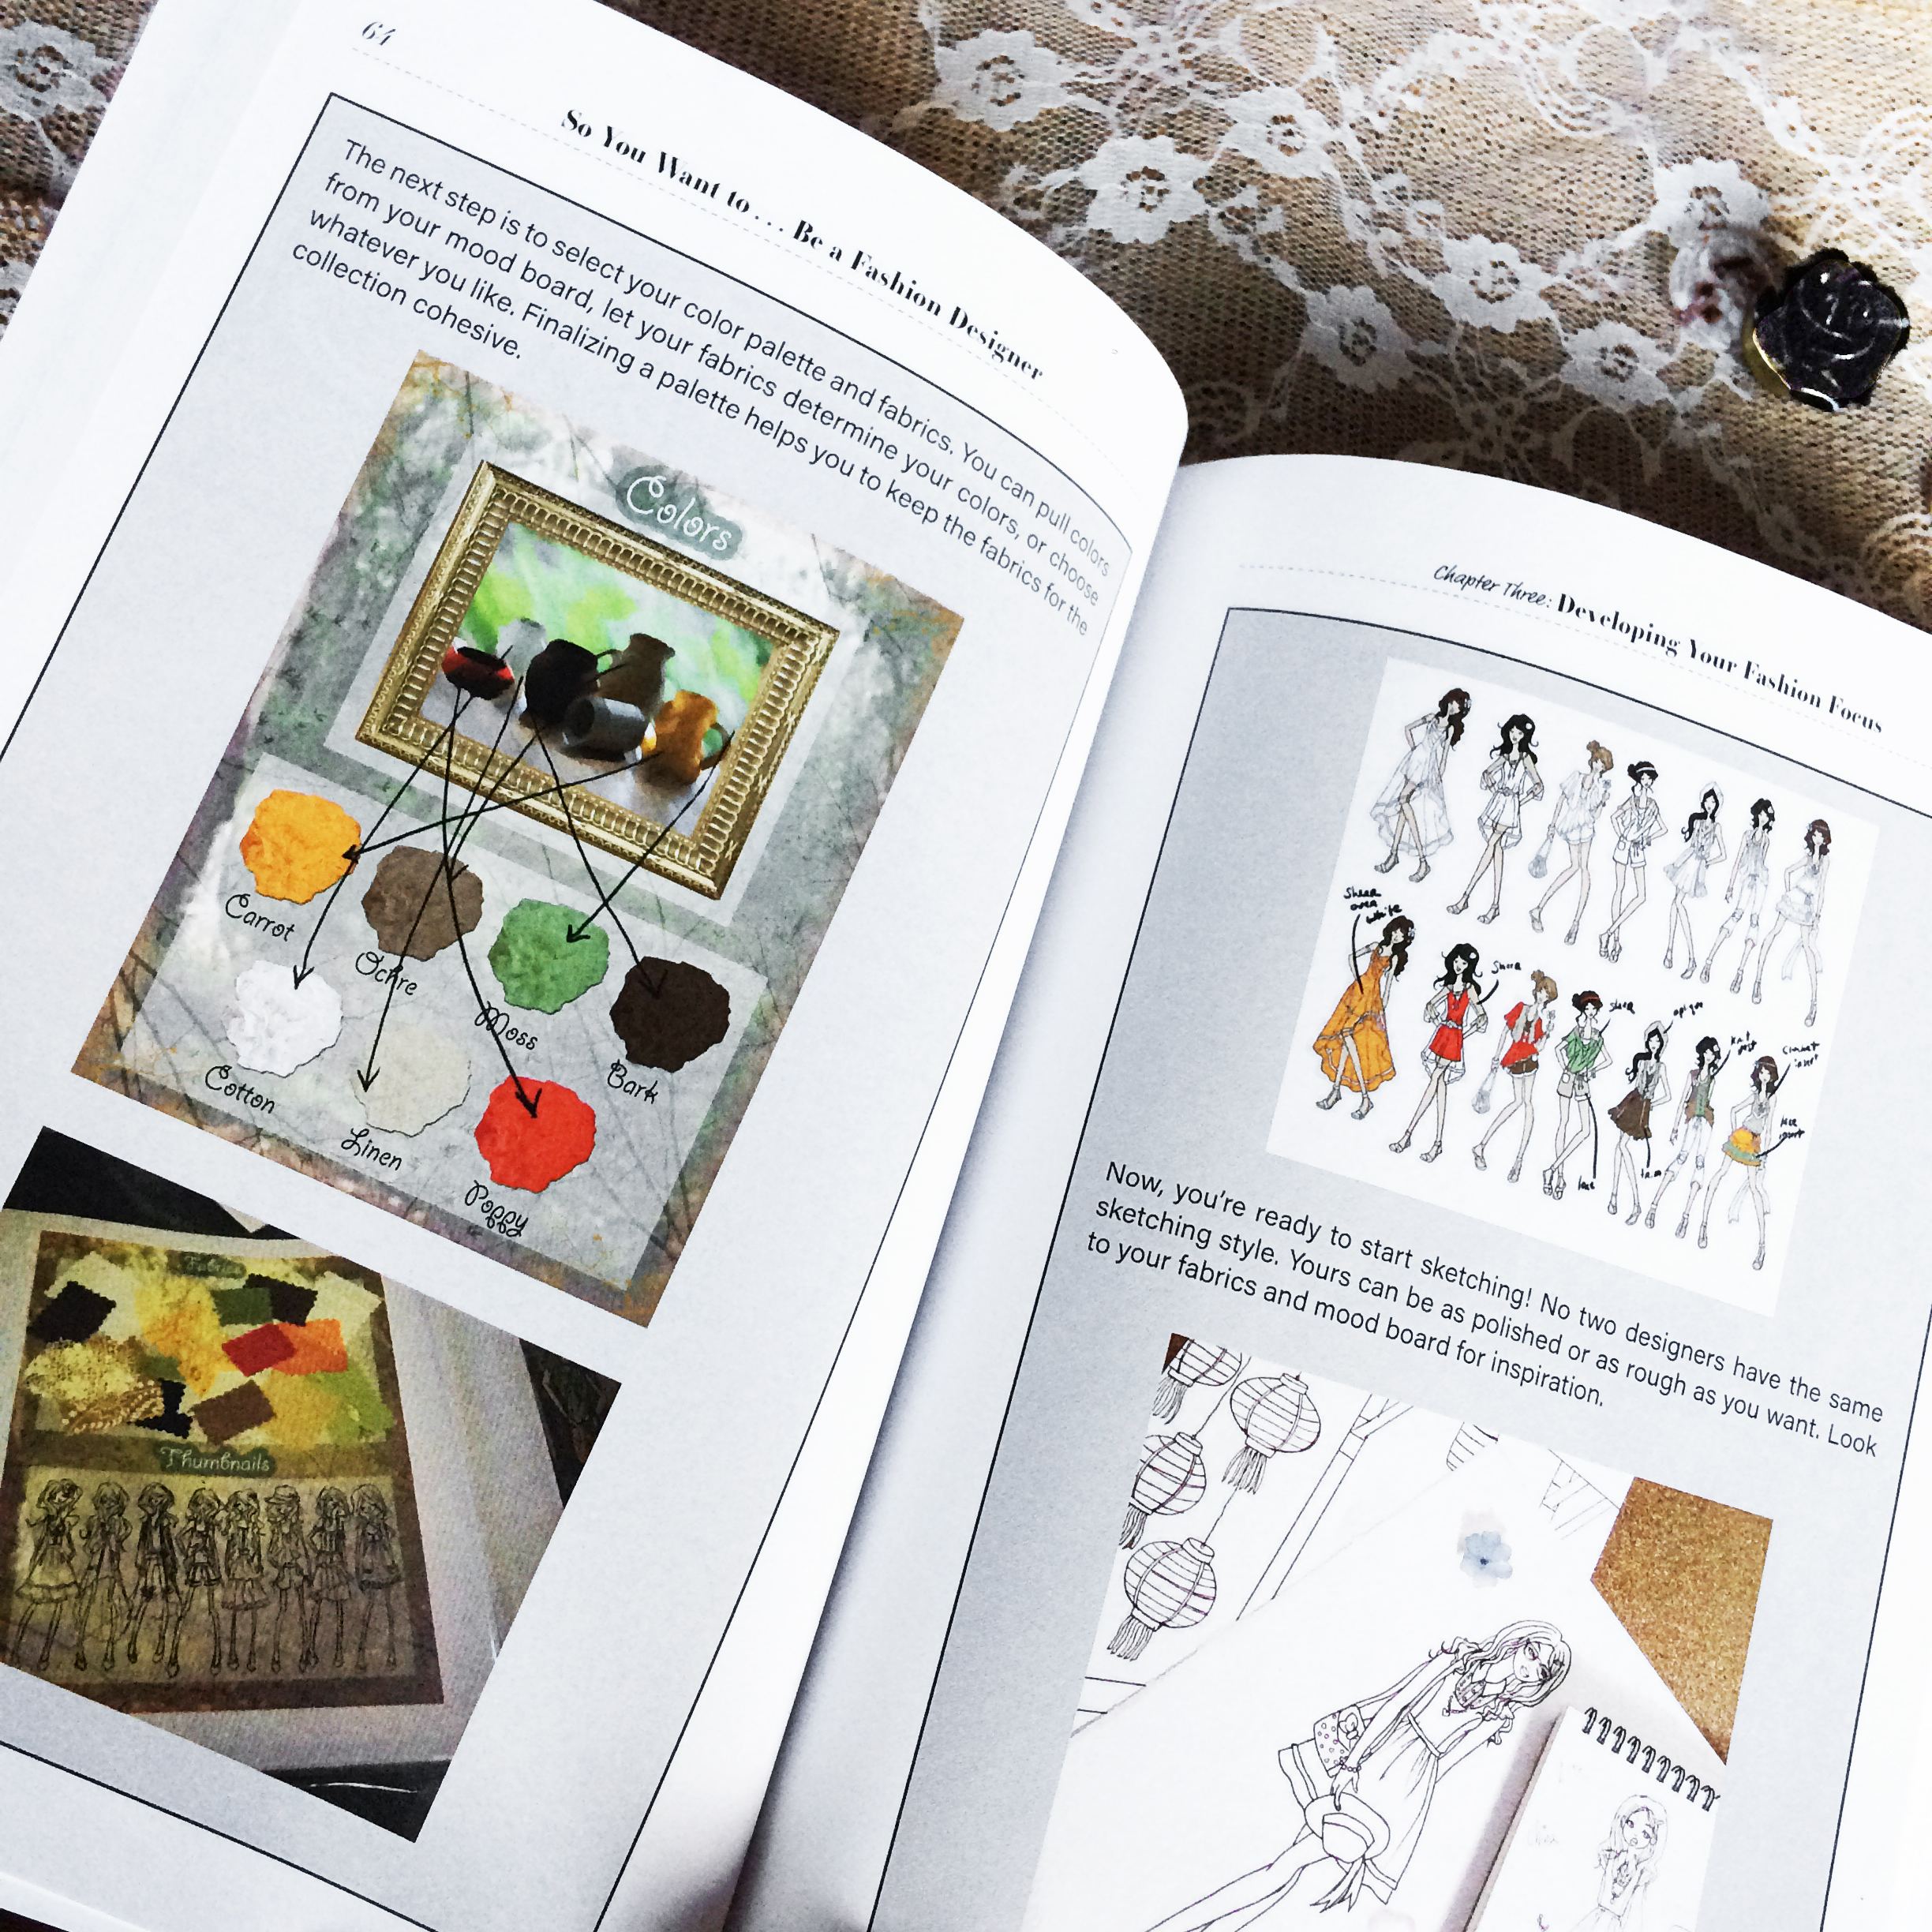 So You Want to Be A Fashion Designer- Book